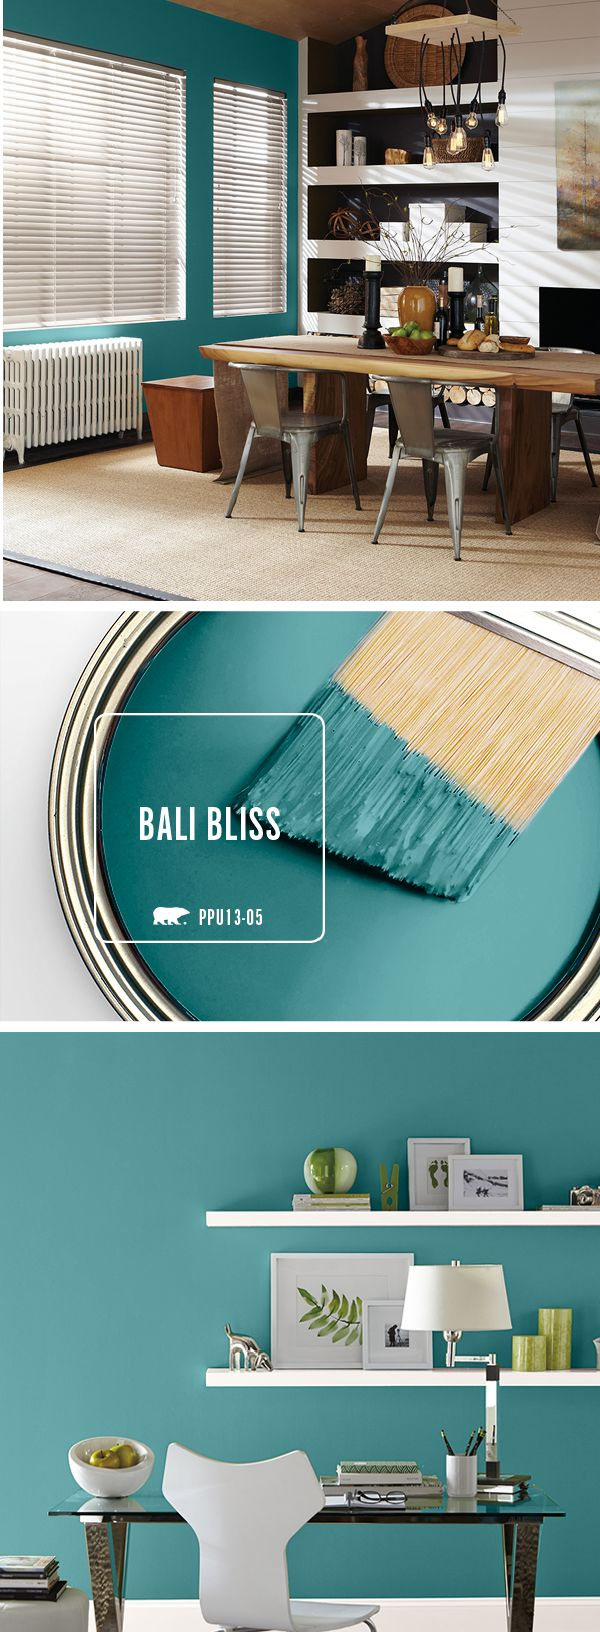 Bali Bliss Is The Perfect Teal Tone To Help Incorporate A Chic And Eclectic Feel To